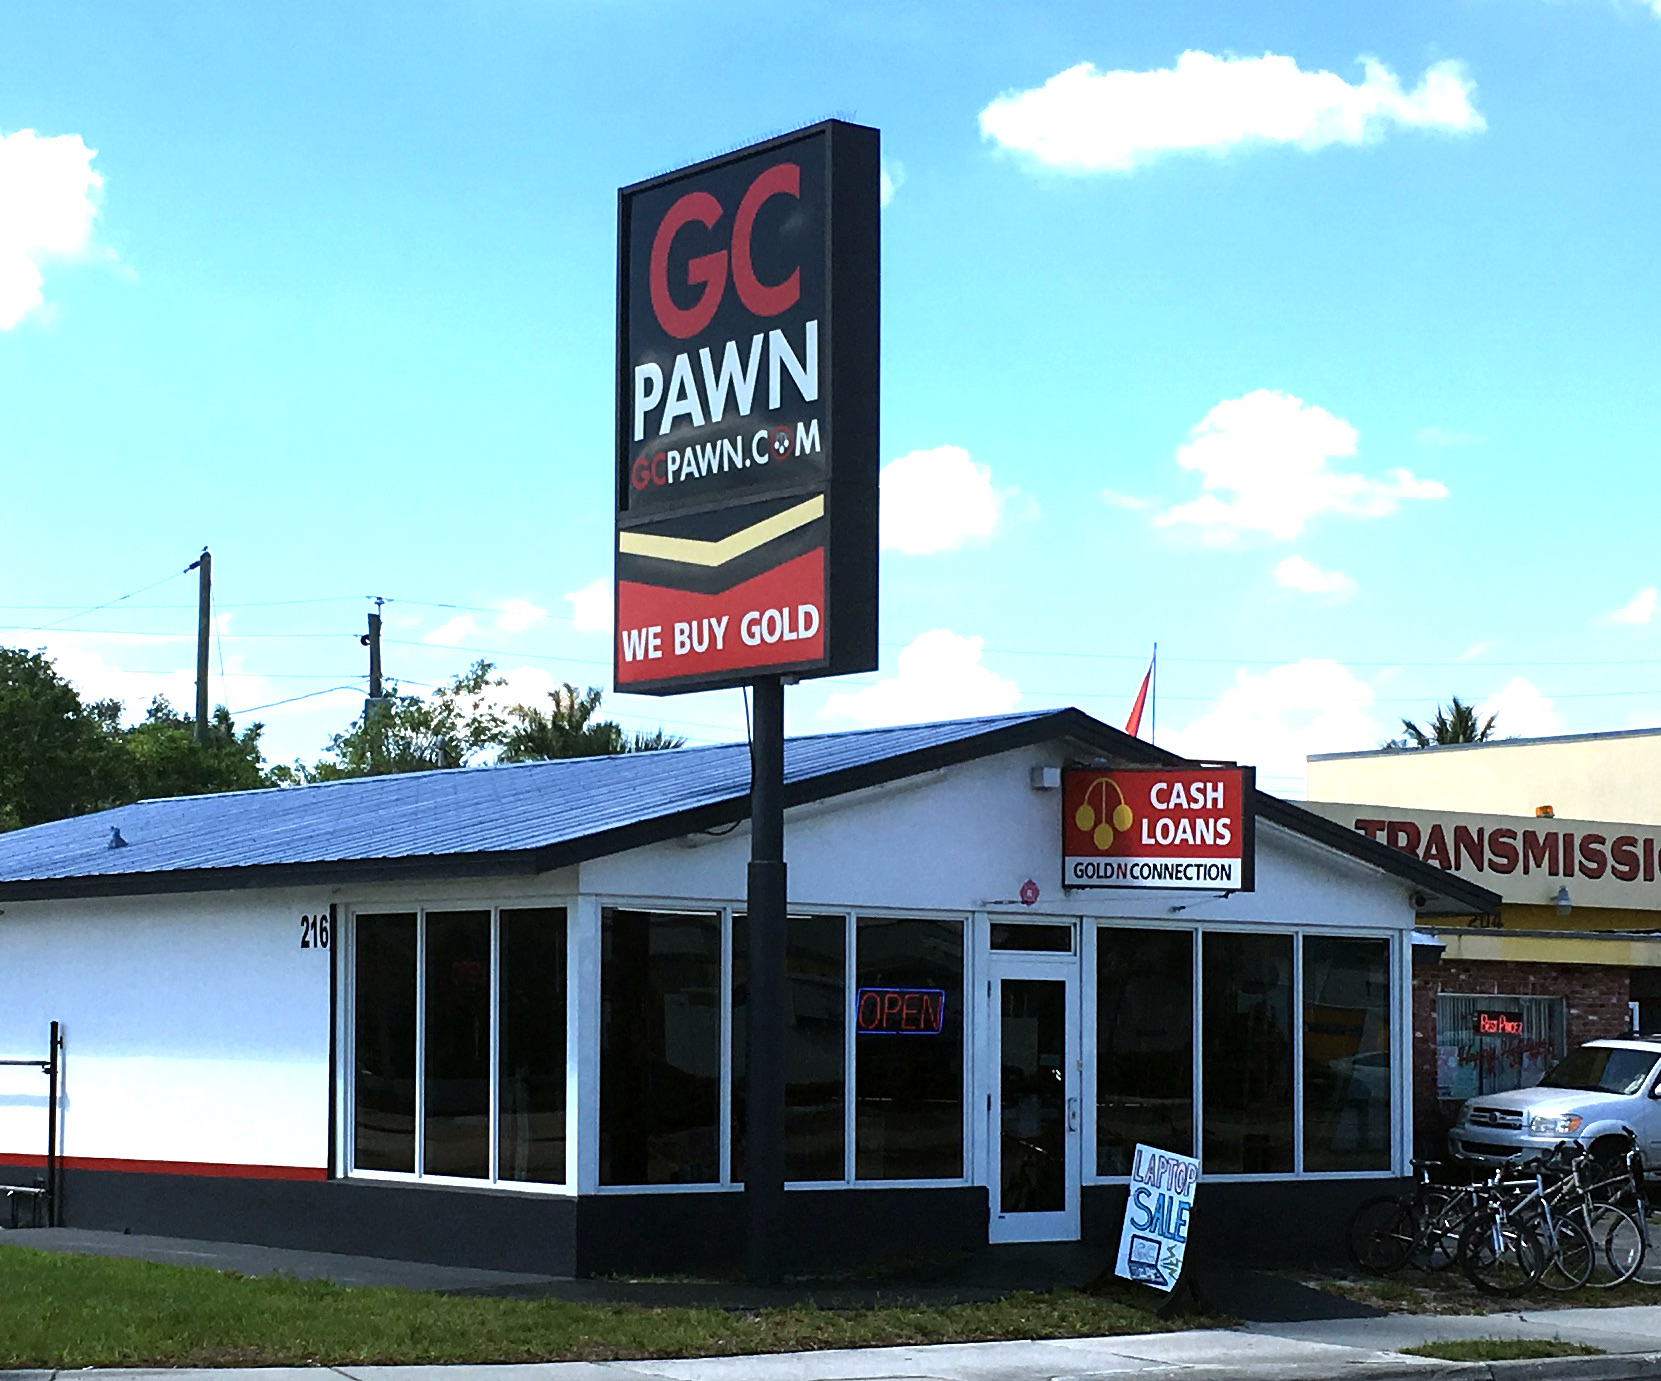 Gc pawn fort lauderdale florida fl for Capital pawn gold jewelry buyers tampa fl